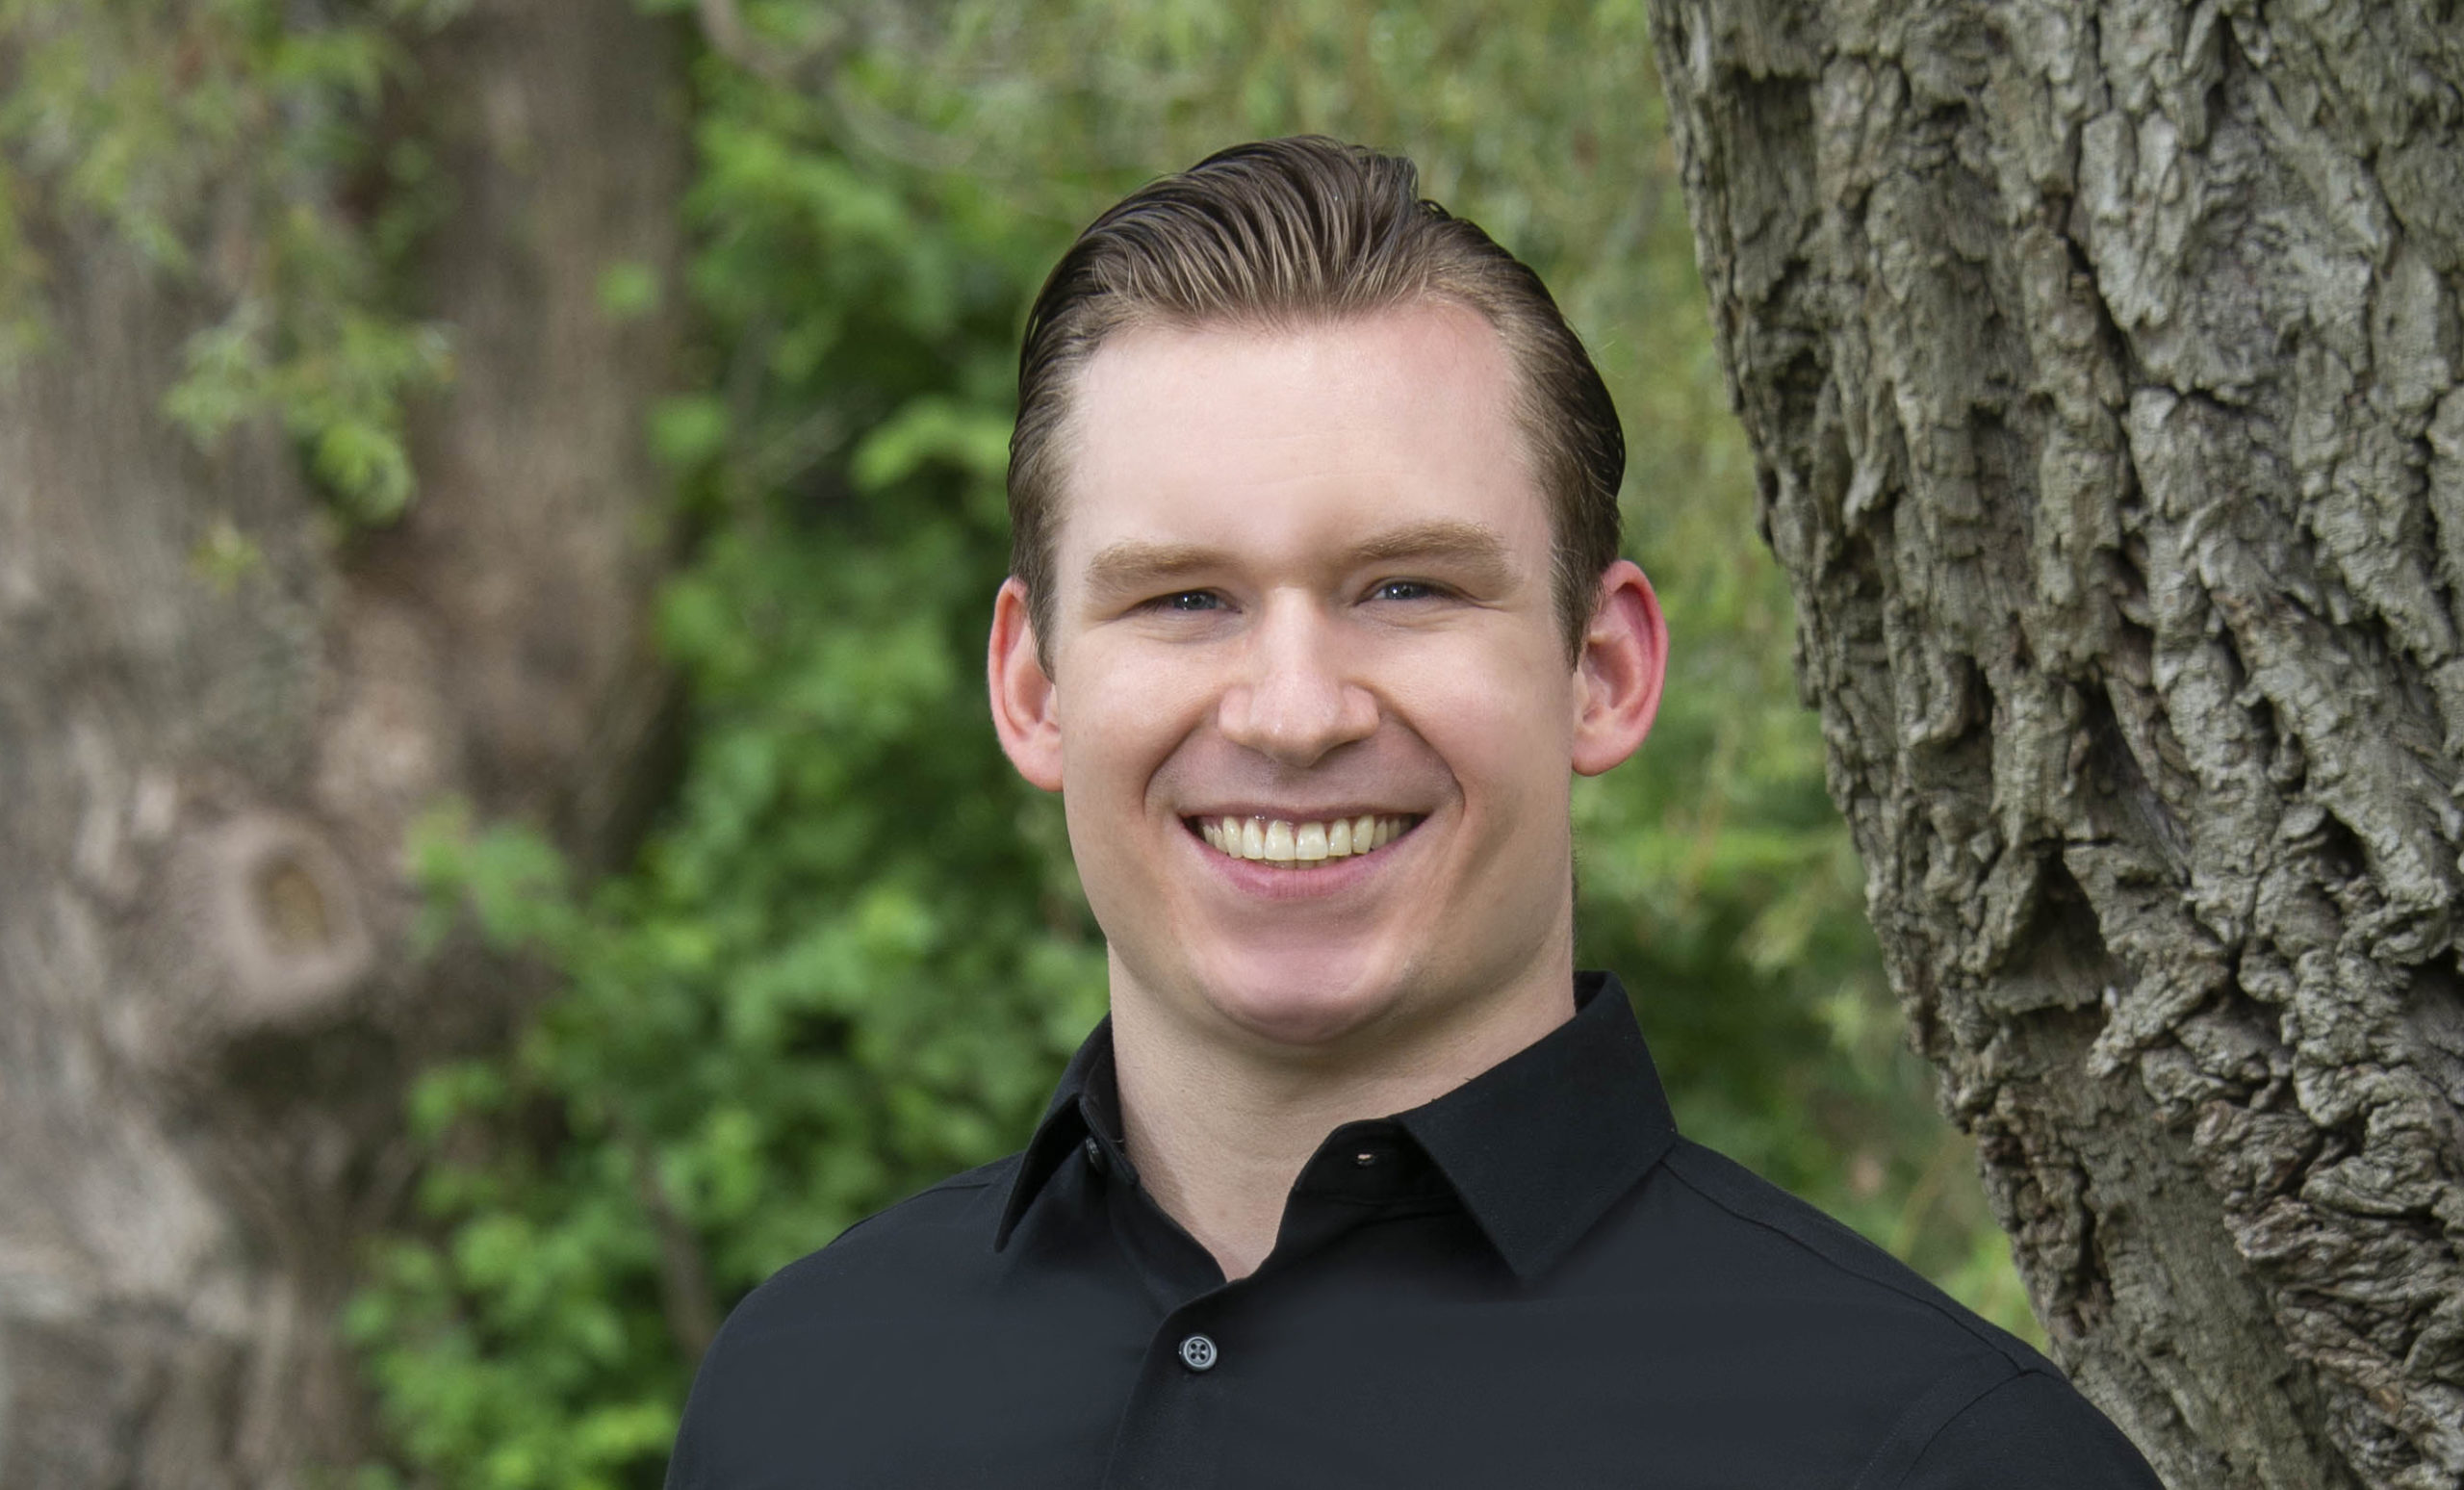 Smile welcomes Dr. Brad Thayer